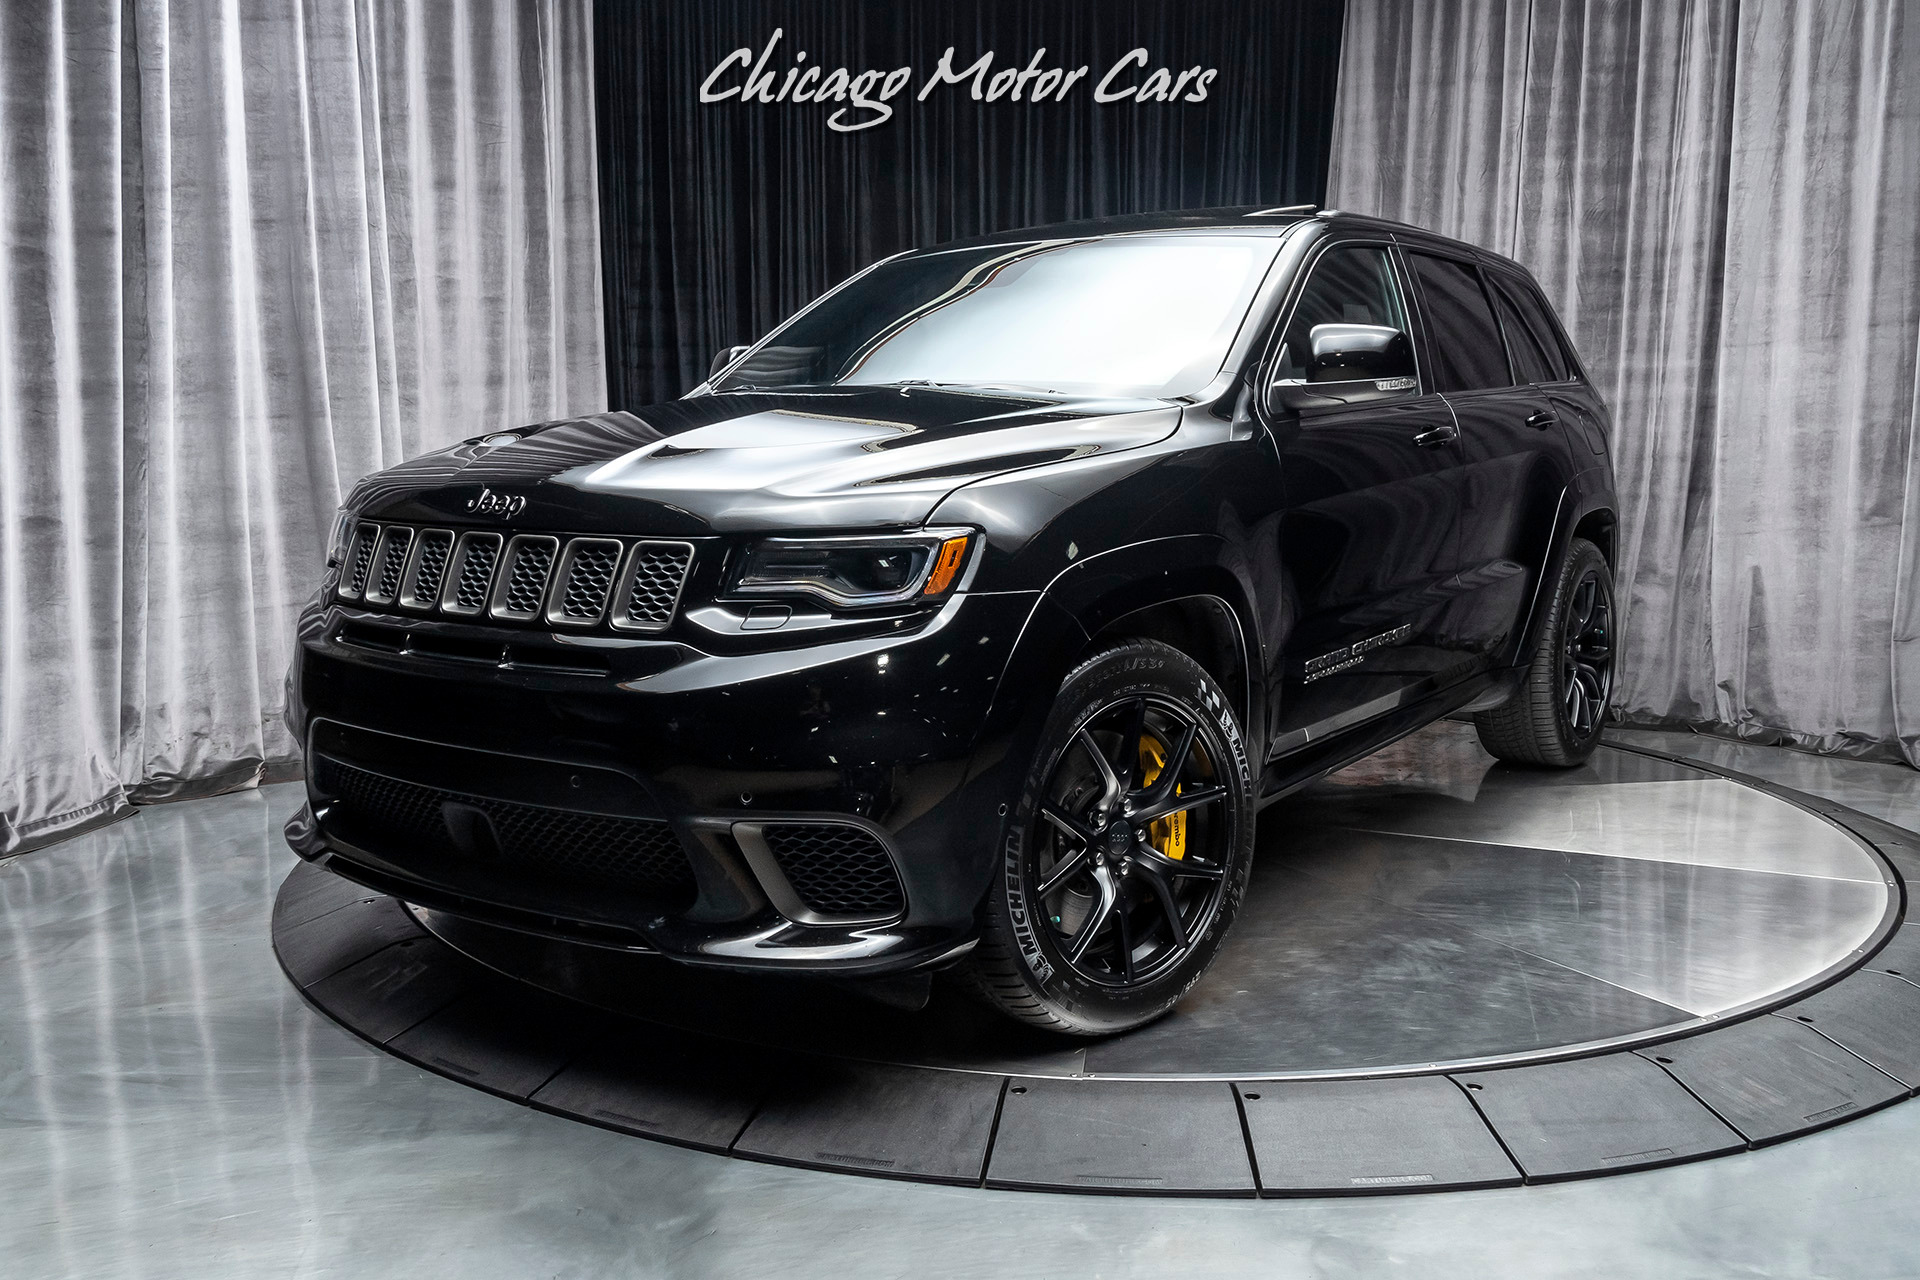 used 2018 jeep grand cherokee trackhawk 4wd suv signature leather wrapped interior 707hp 6 2l sc v8 for sale special pricing chicago motor cars stock 17036 used 2018 jeep grand cherokee trackhawk